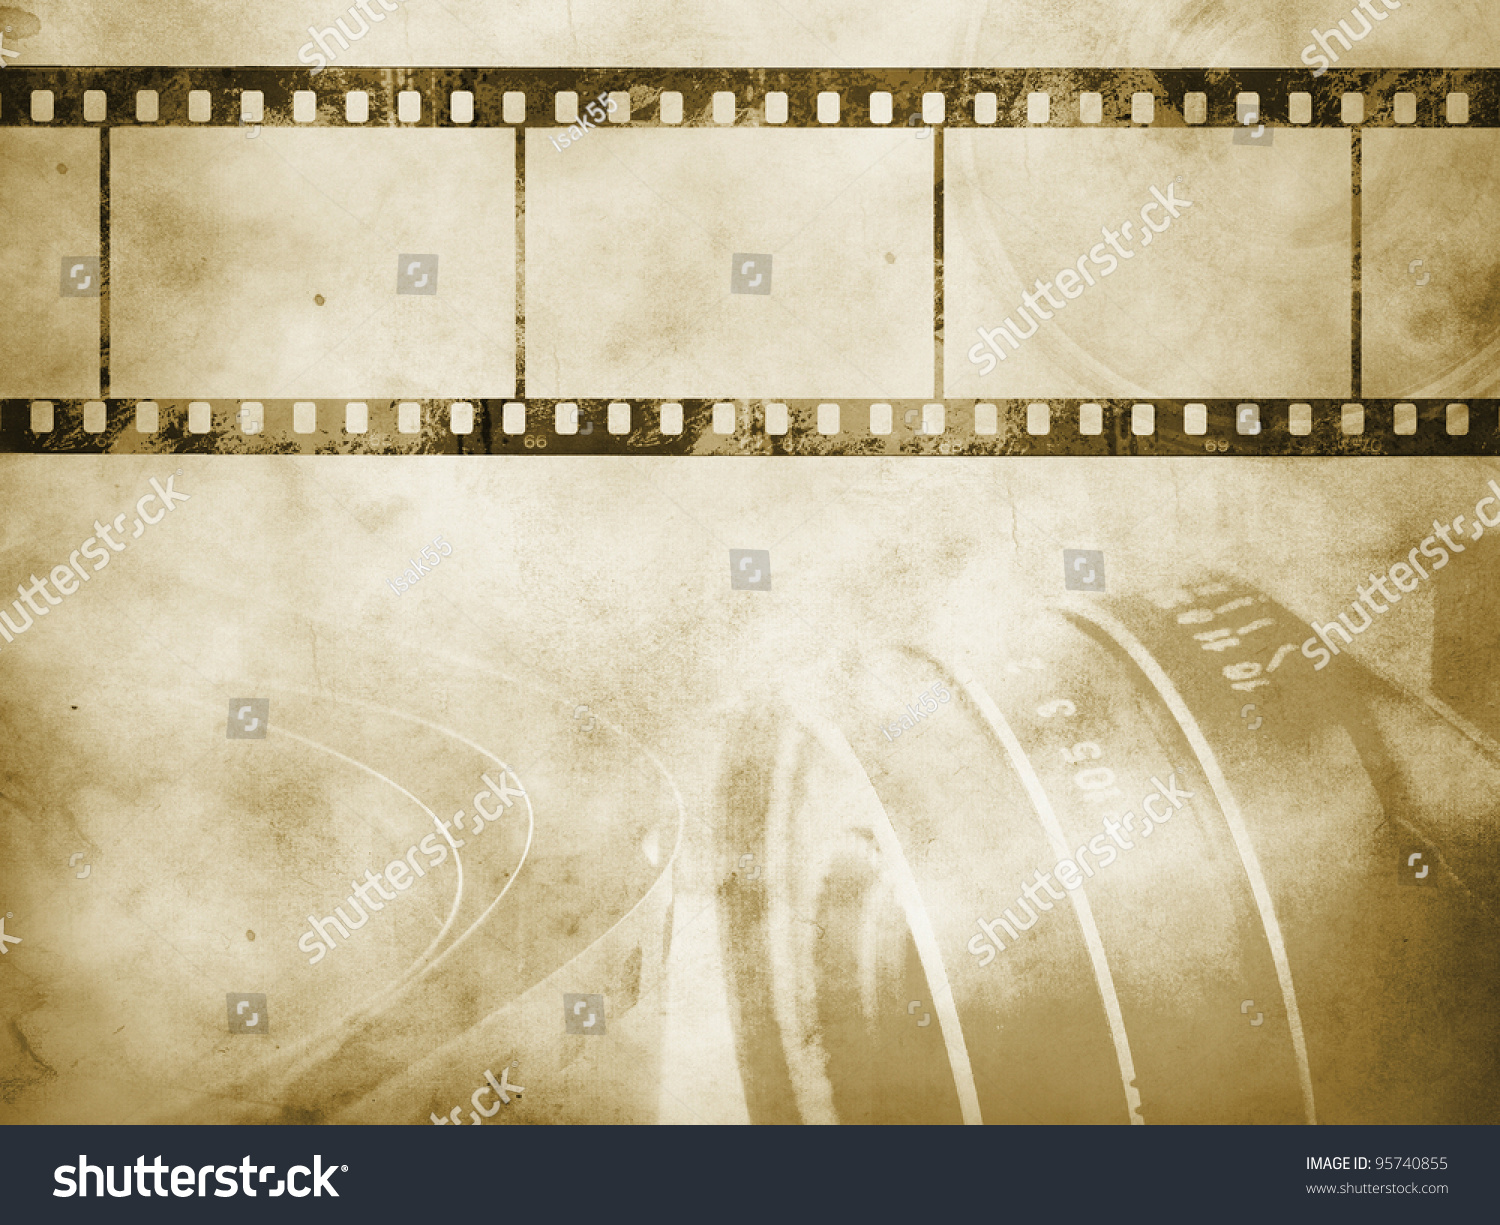 Vintage Background Retro Camera Negative Film Stock Photo ...